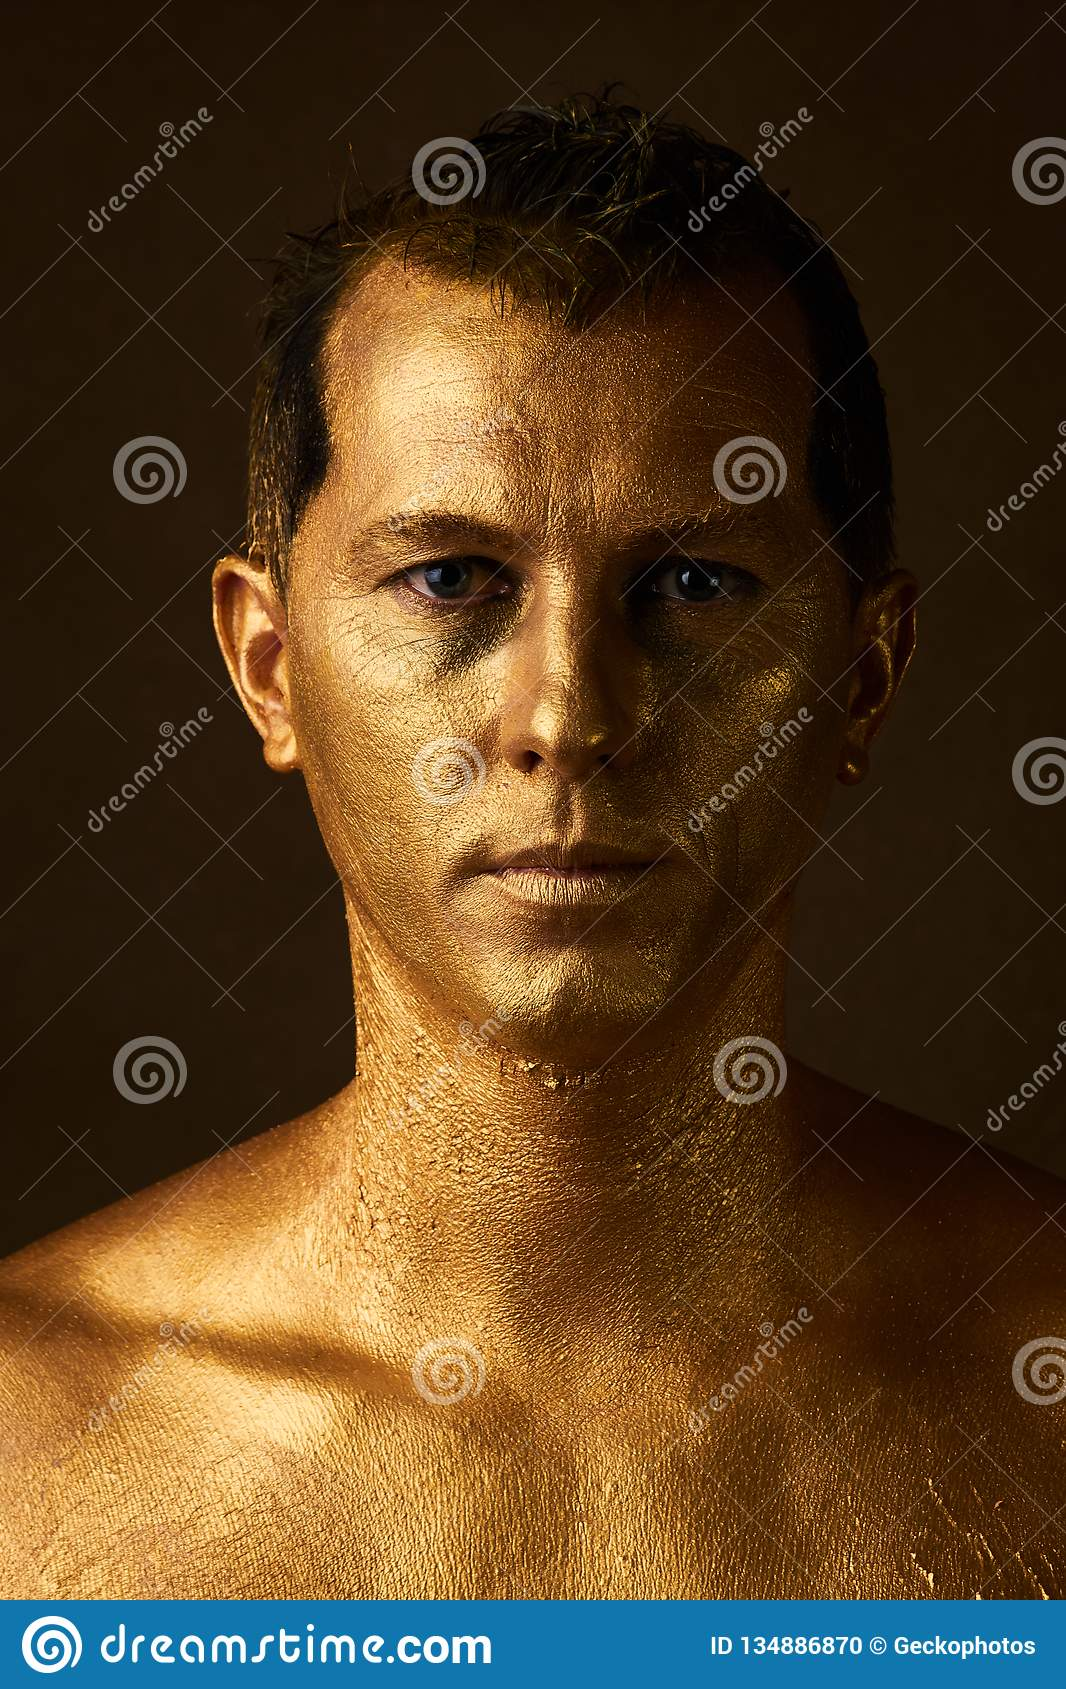 Body Art Paint With Gold On Face Of Man Over Dark Background Stock Photo Image Of Color Background 134886870